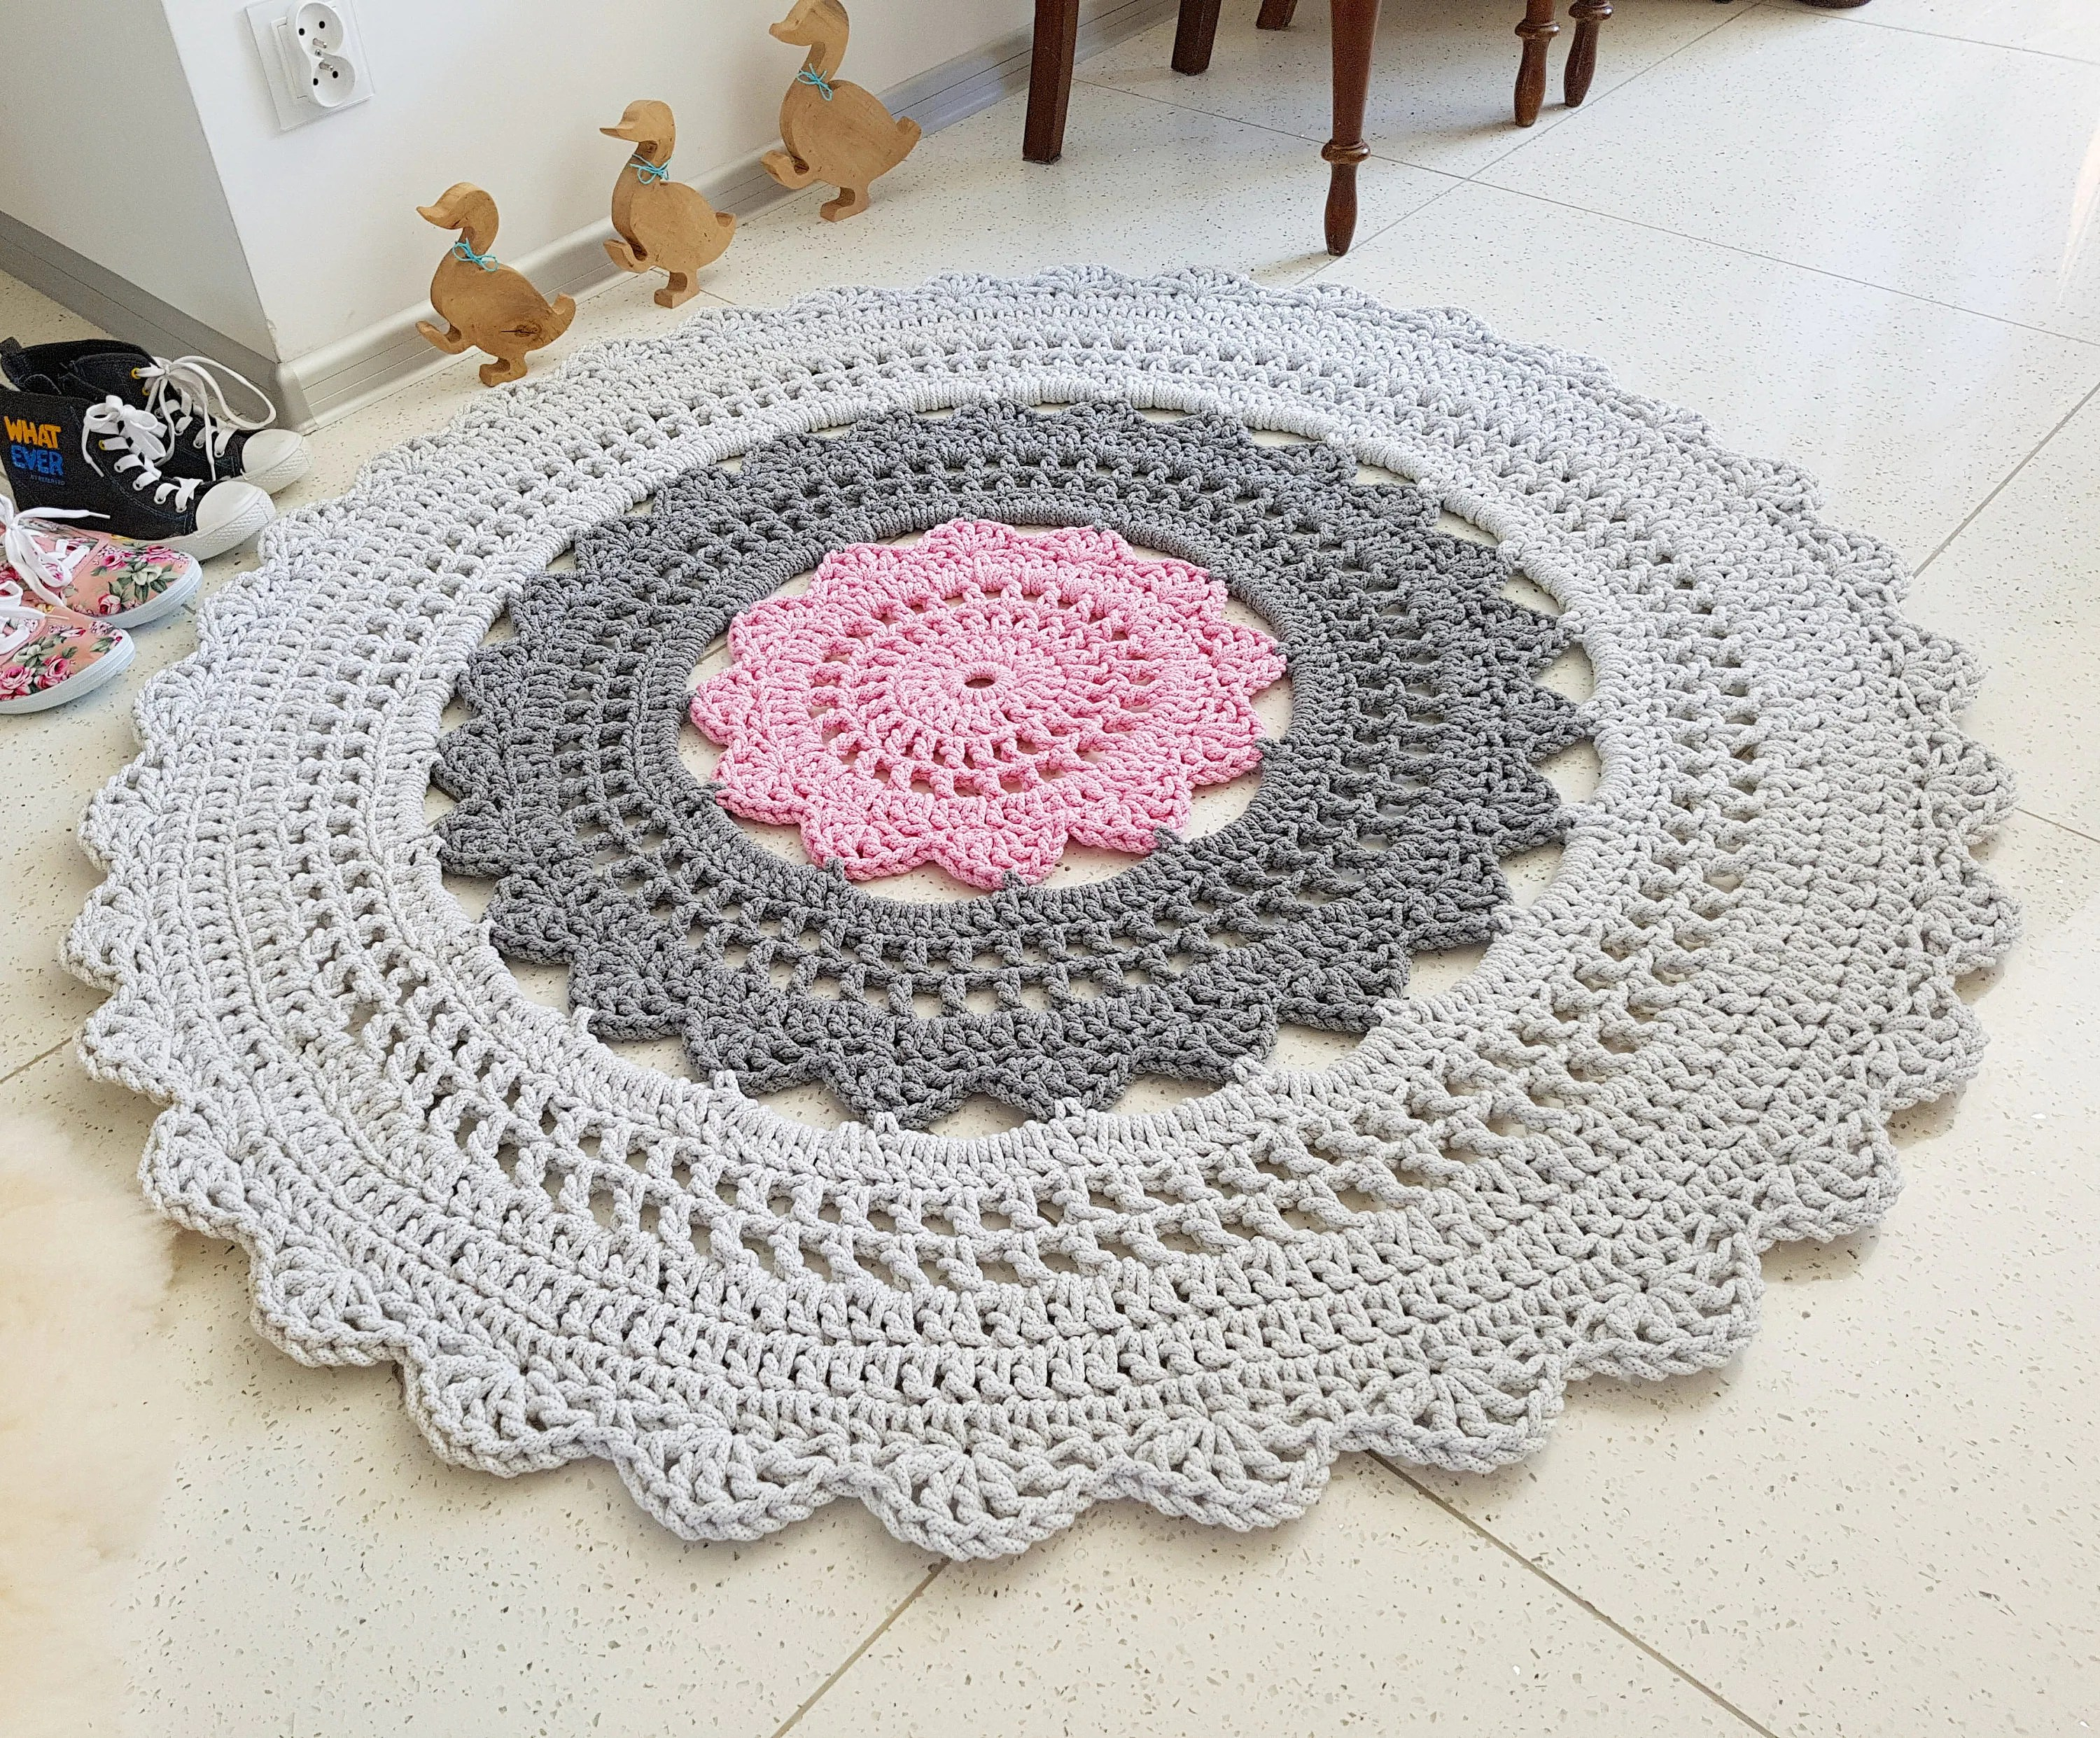 Shabby Chic Teppich Multi Colour Doily Rug Tapis Bohemian Shabby Chic Country Bedroom Rustic Floor Decor Teppich Rund Alfombra Trapillo Modern Carpet